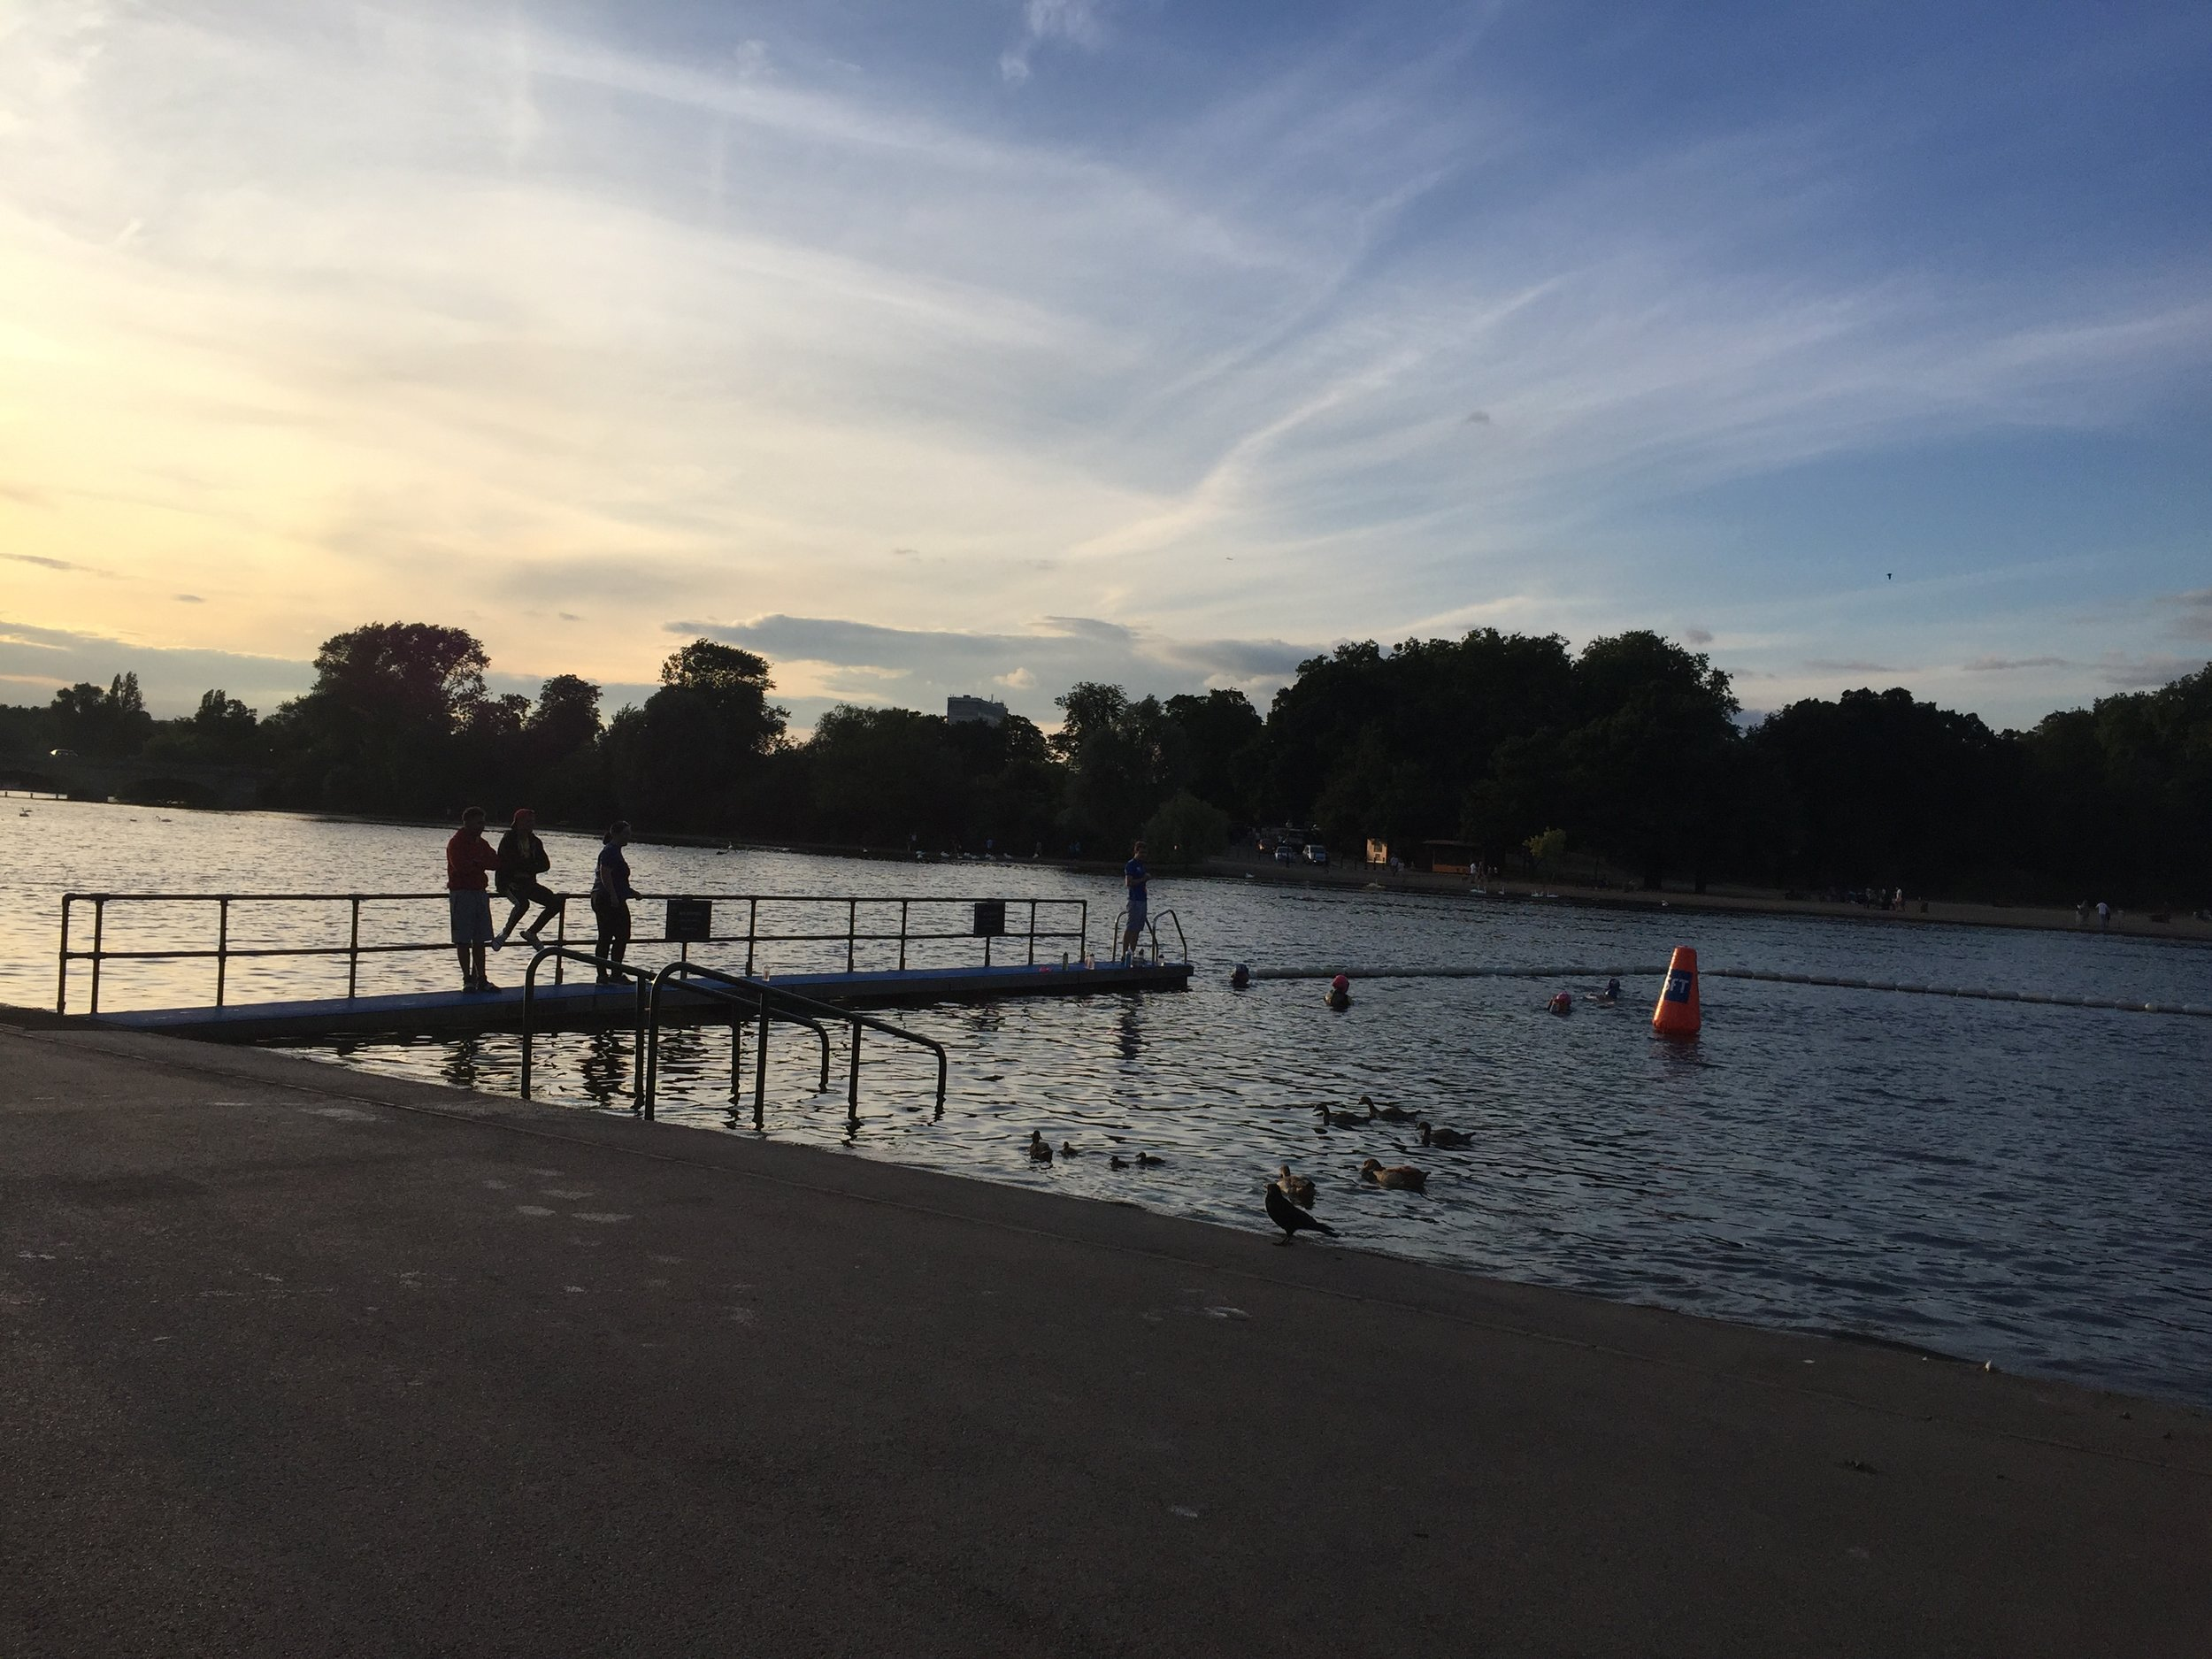 The Serpentine in the summer